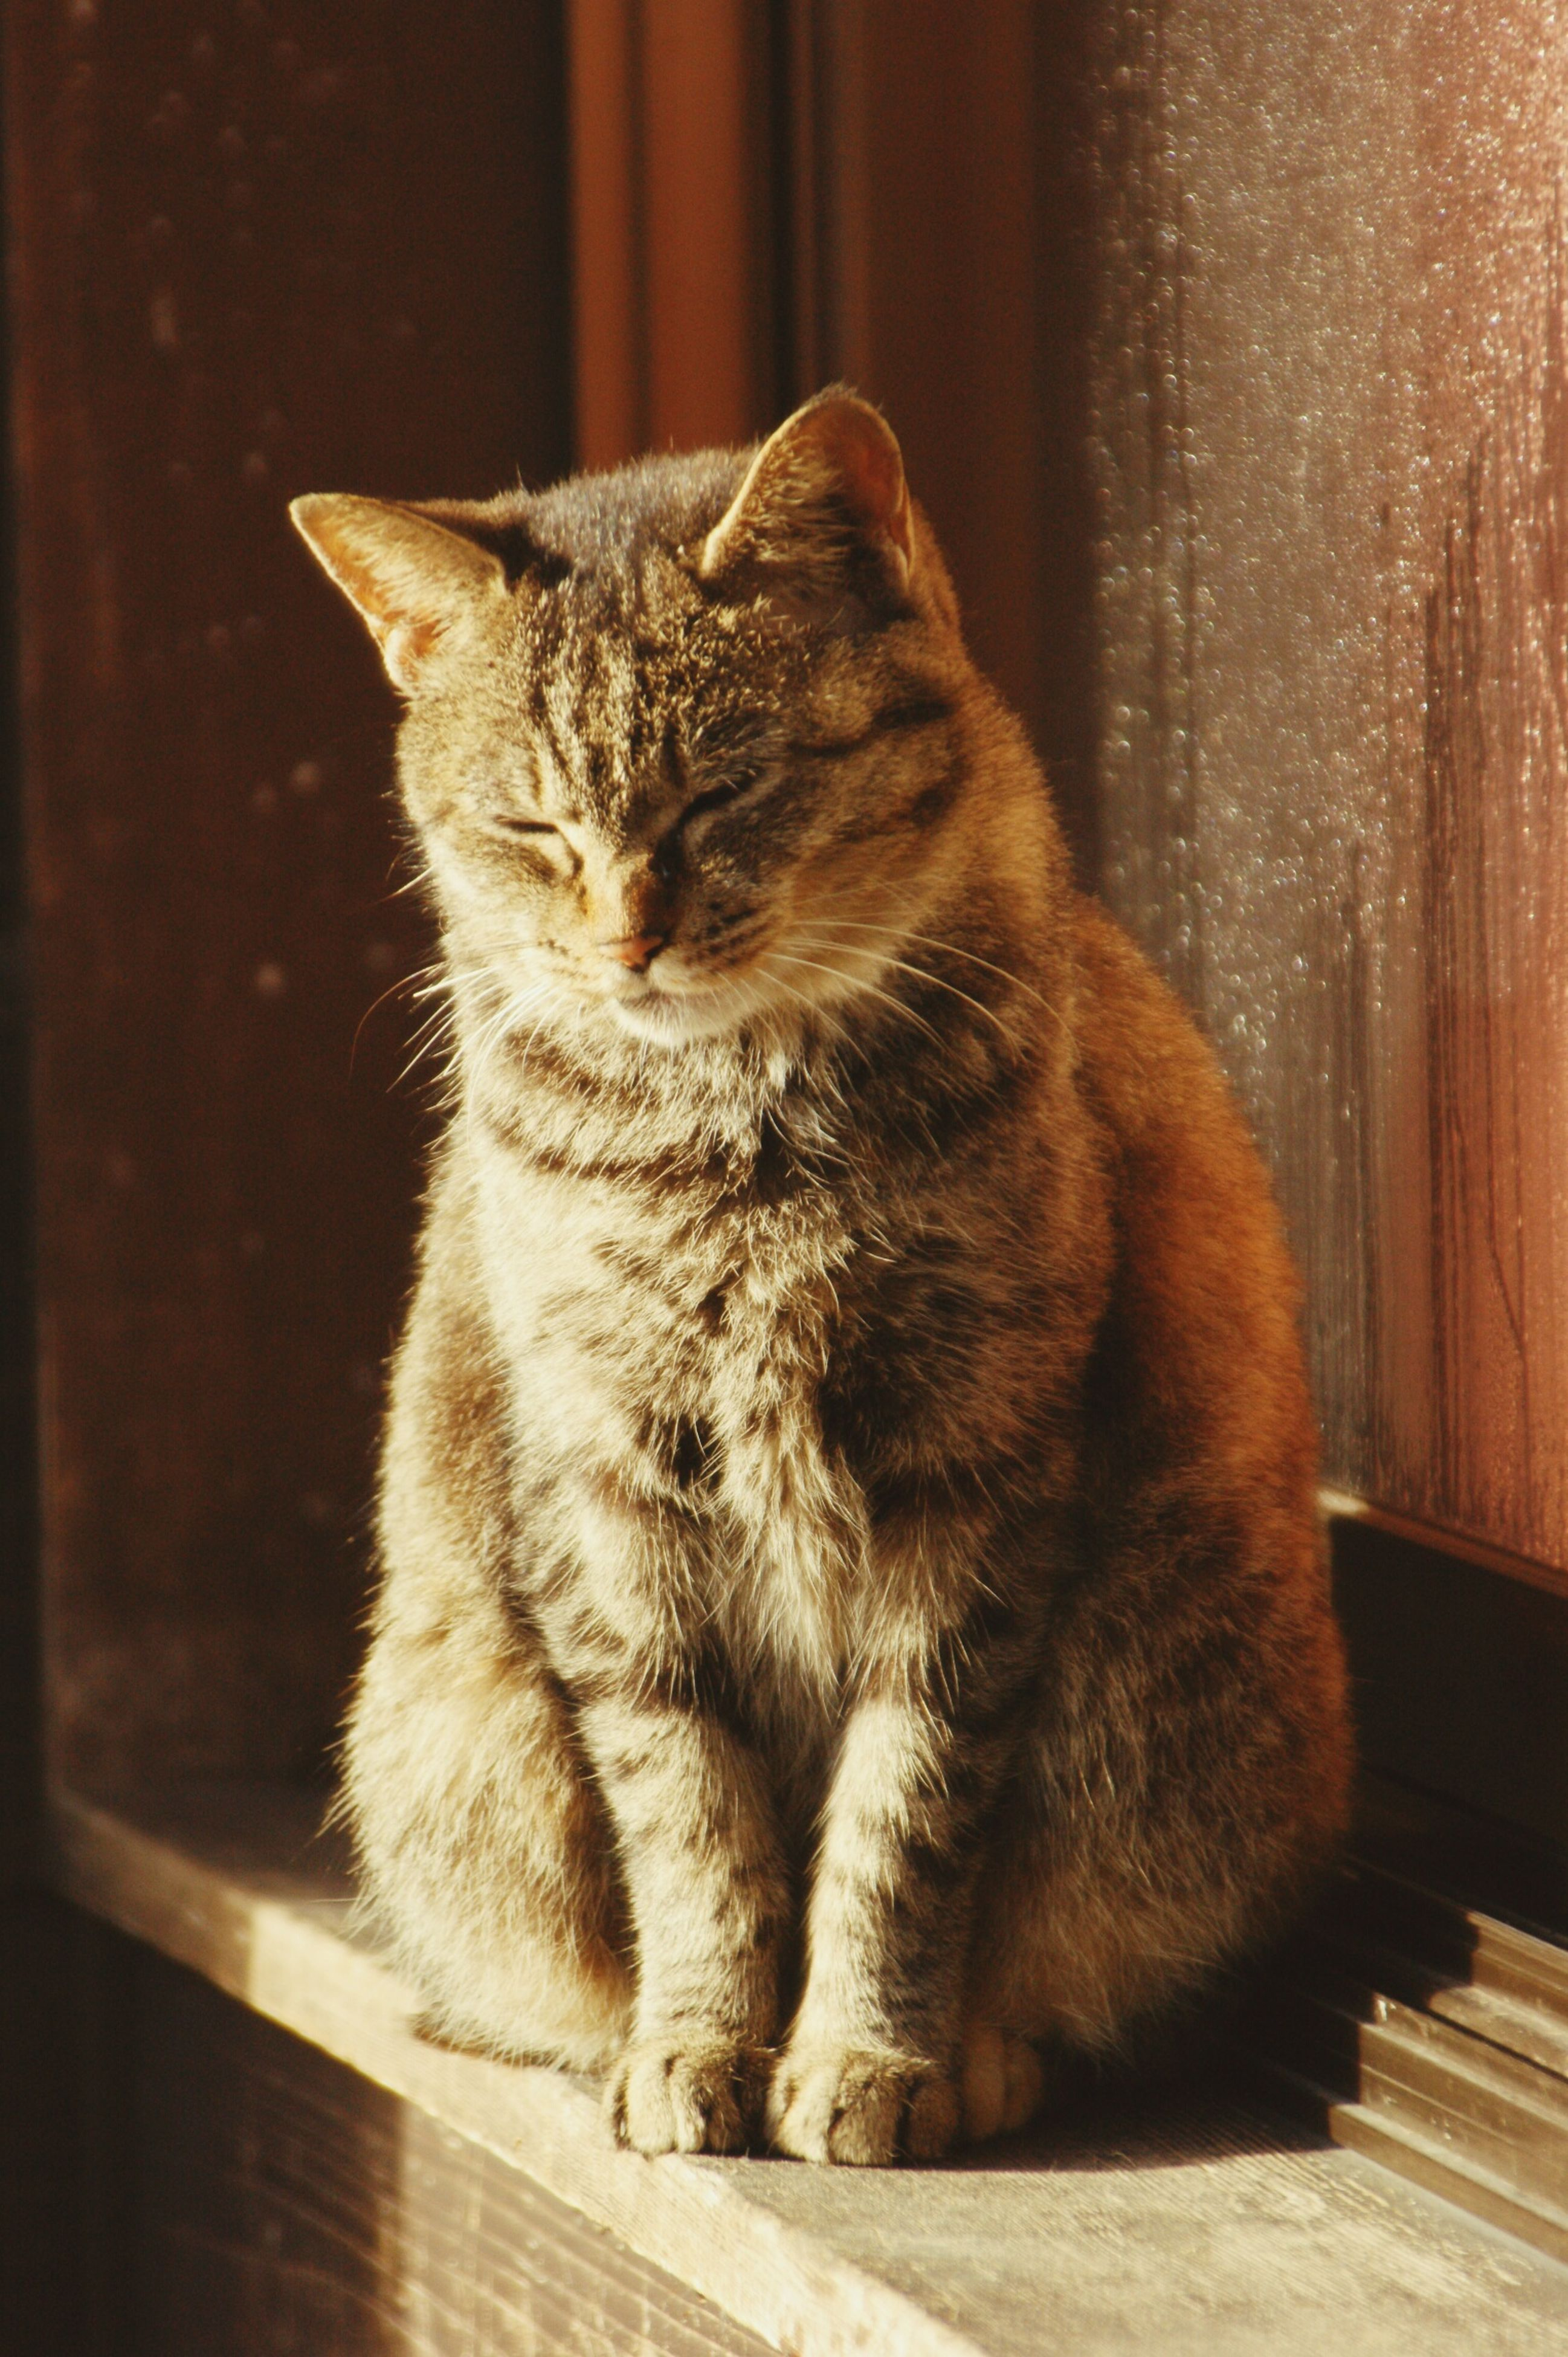 domestic cat, cat, pets, feline, one animal, mammal, animal themes, domestic animals, whisker, indoors, relaxation, sitting, looking away, close-up, full length, side view, no people, home interior, resting, lying down